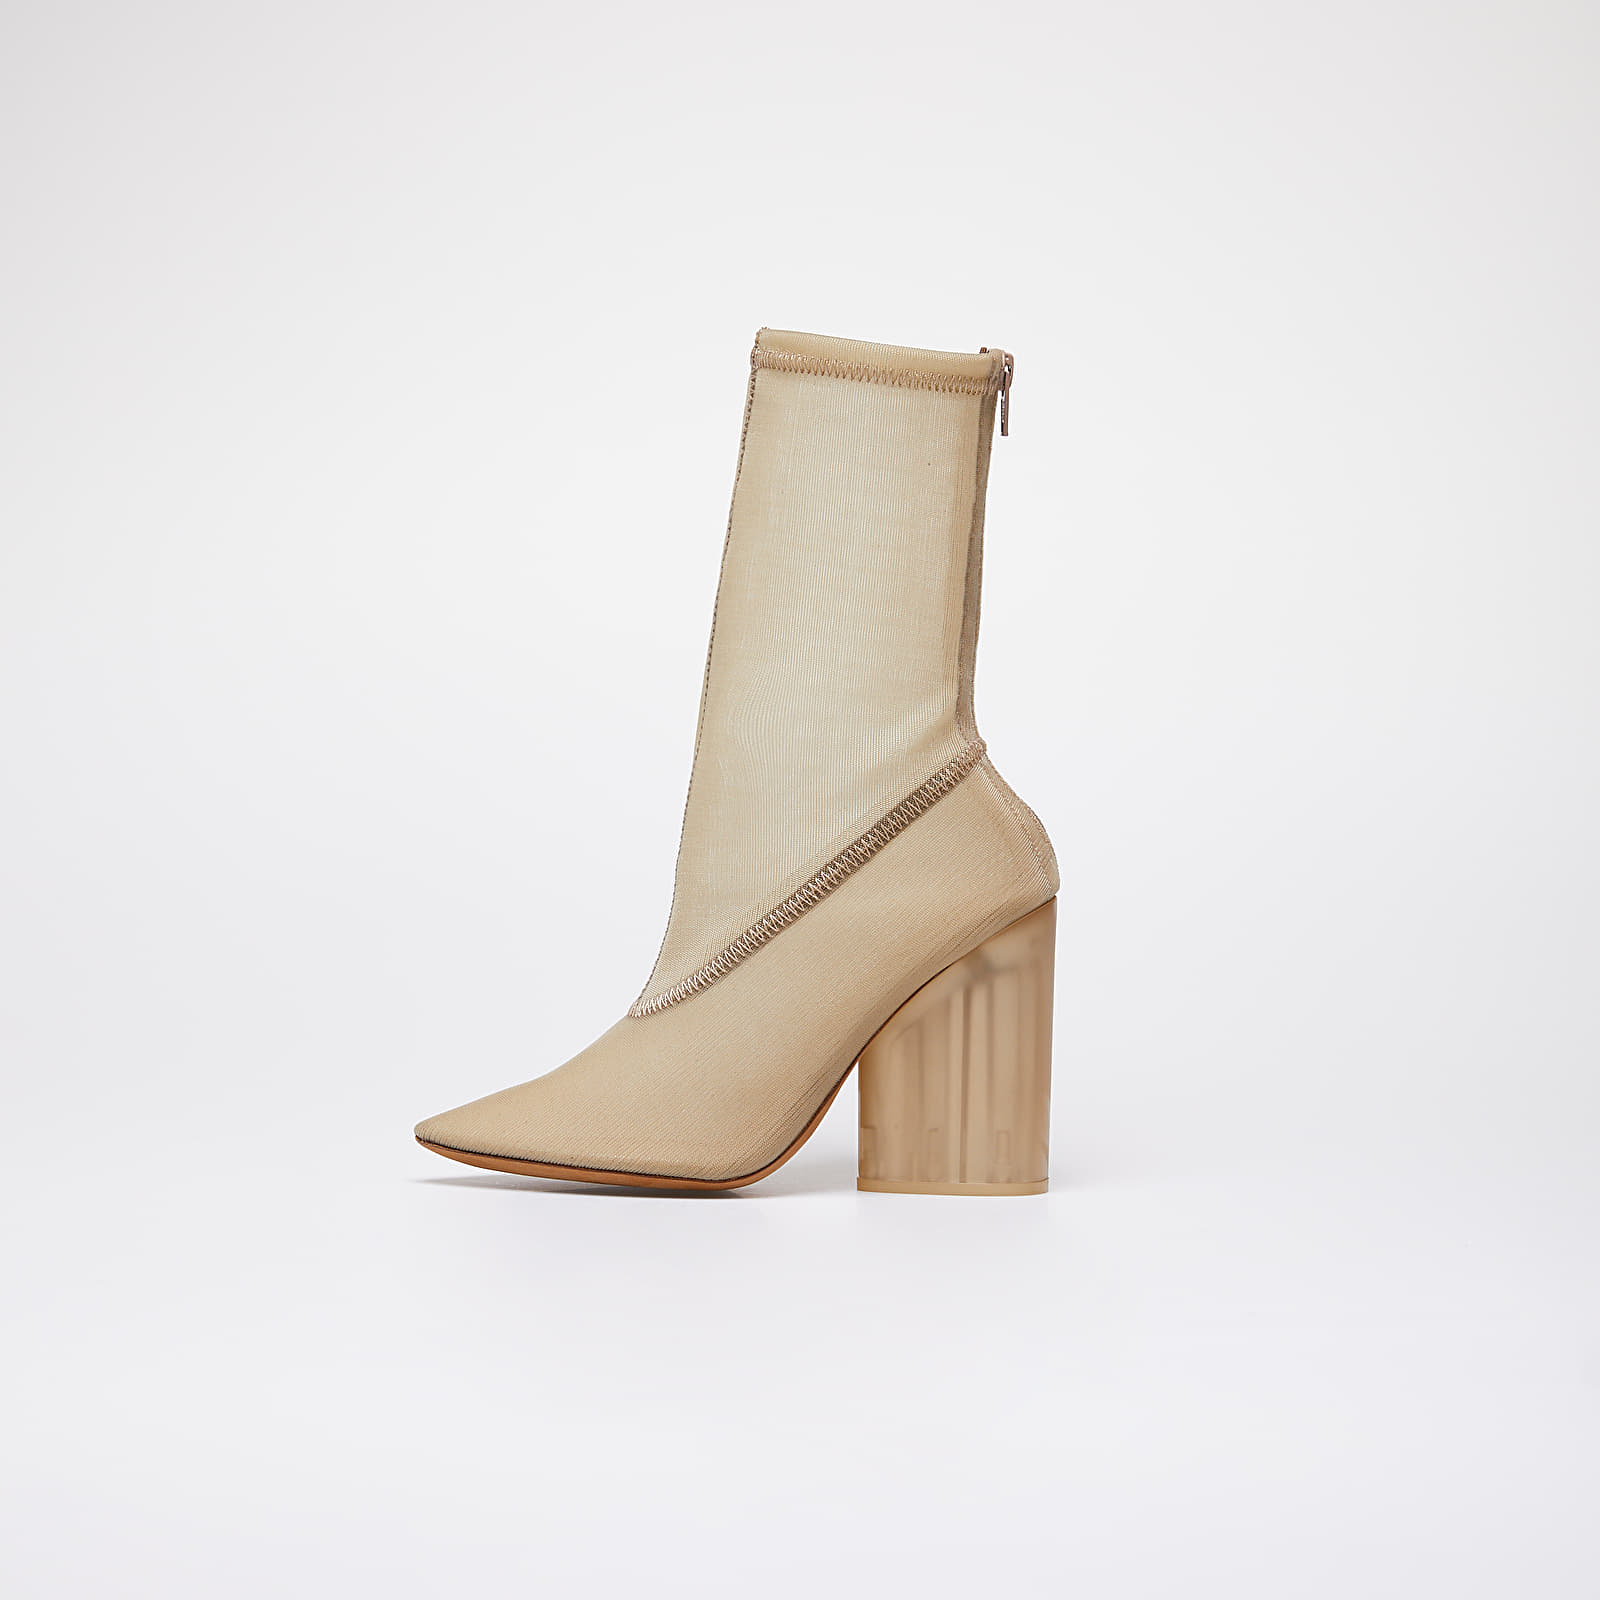 Yeezy Season 7 Stretch Mesh Ankle Boot